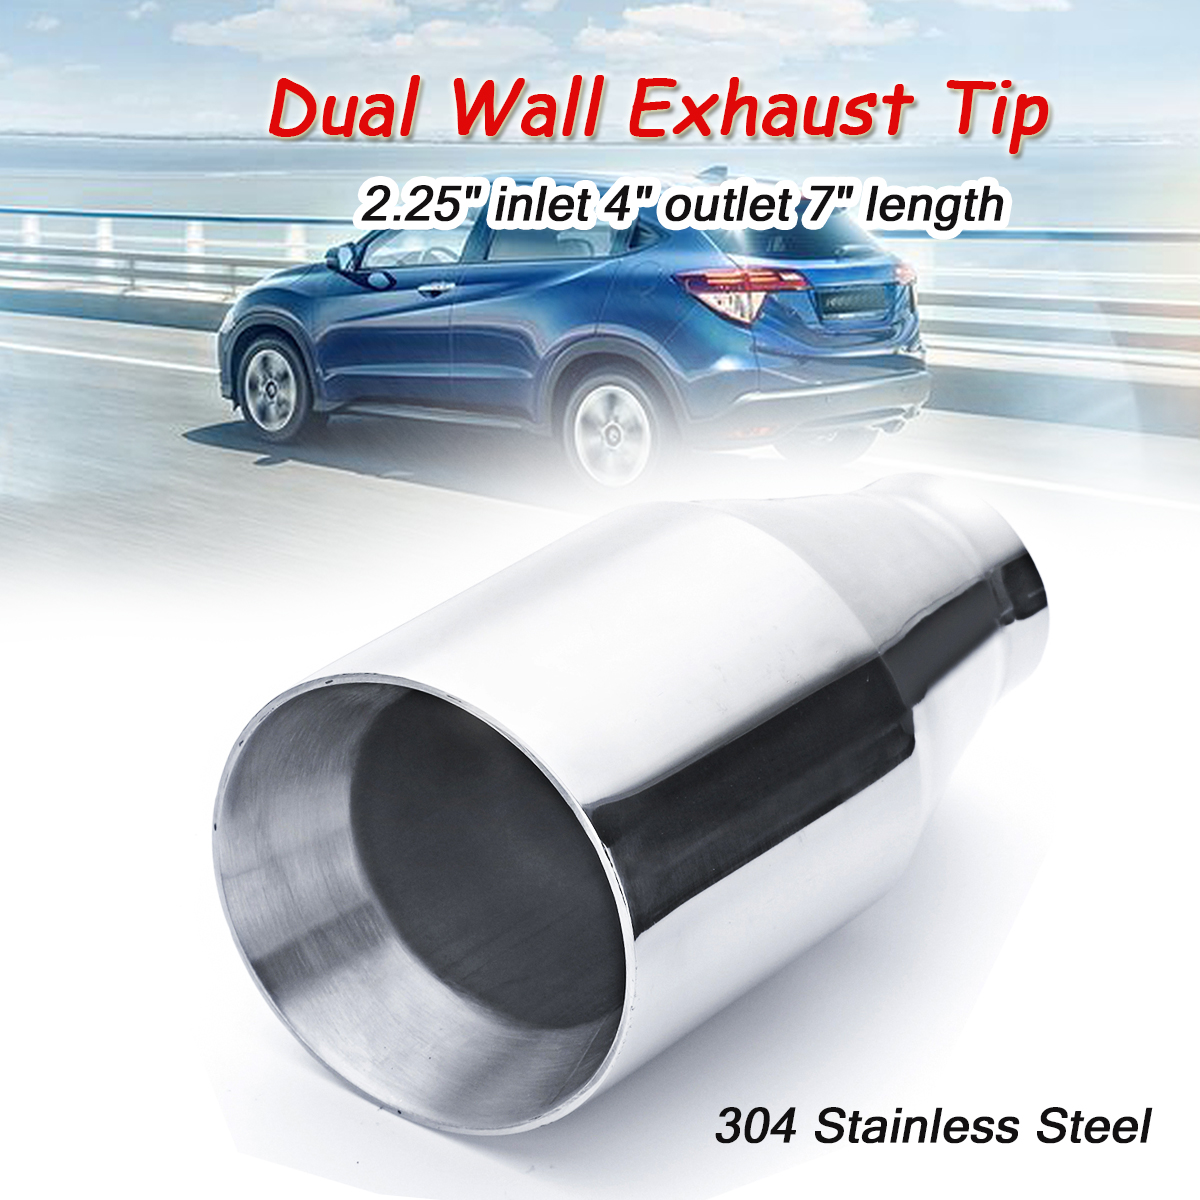 2 25 Inlet 4 Outlet 7 Dual Wall Stainless Steel Exhaust Muffler